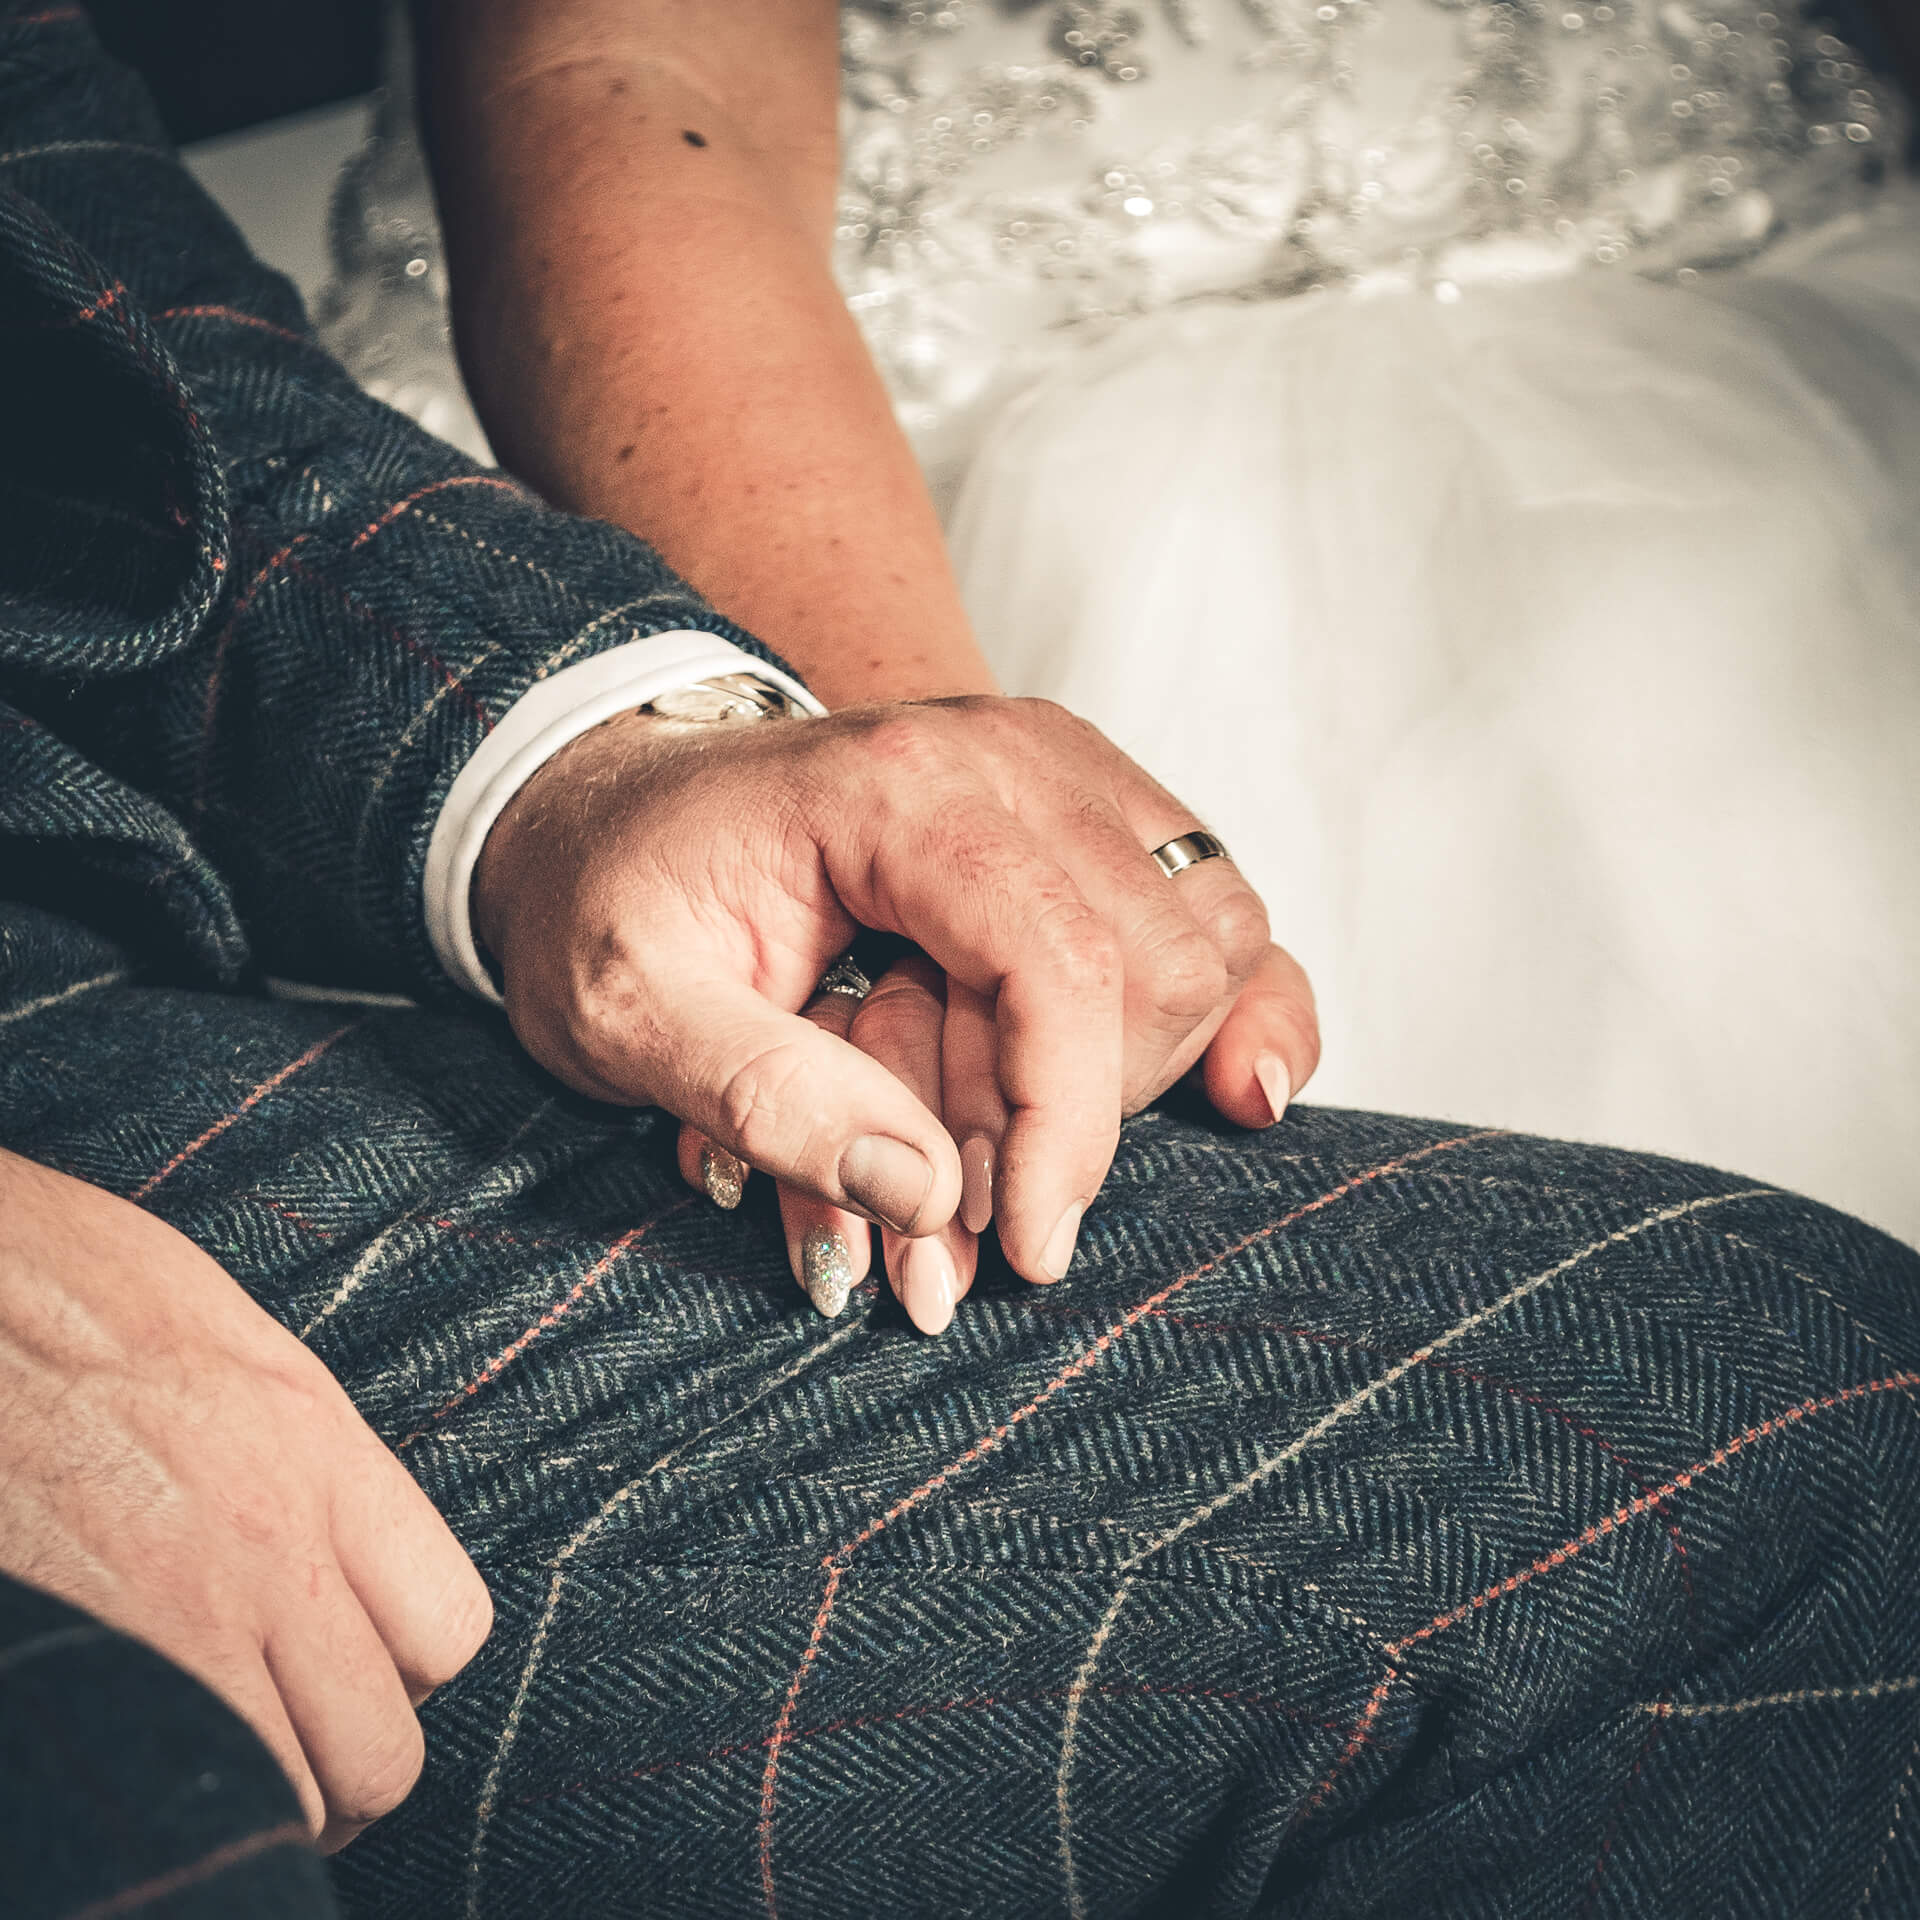 A close up shot of the Grooms thigh. The bride has placed her hand on his thigh, his hand, wearing his wedding ring, is over the top of hers.